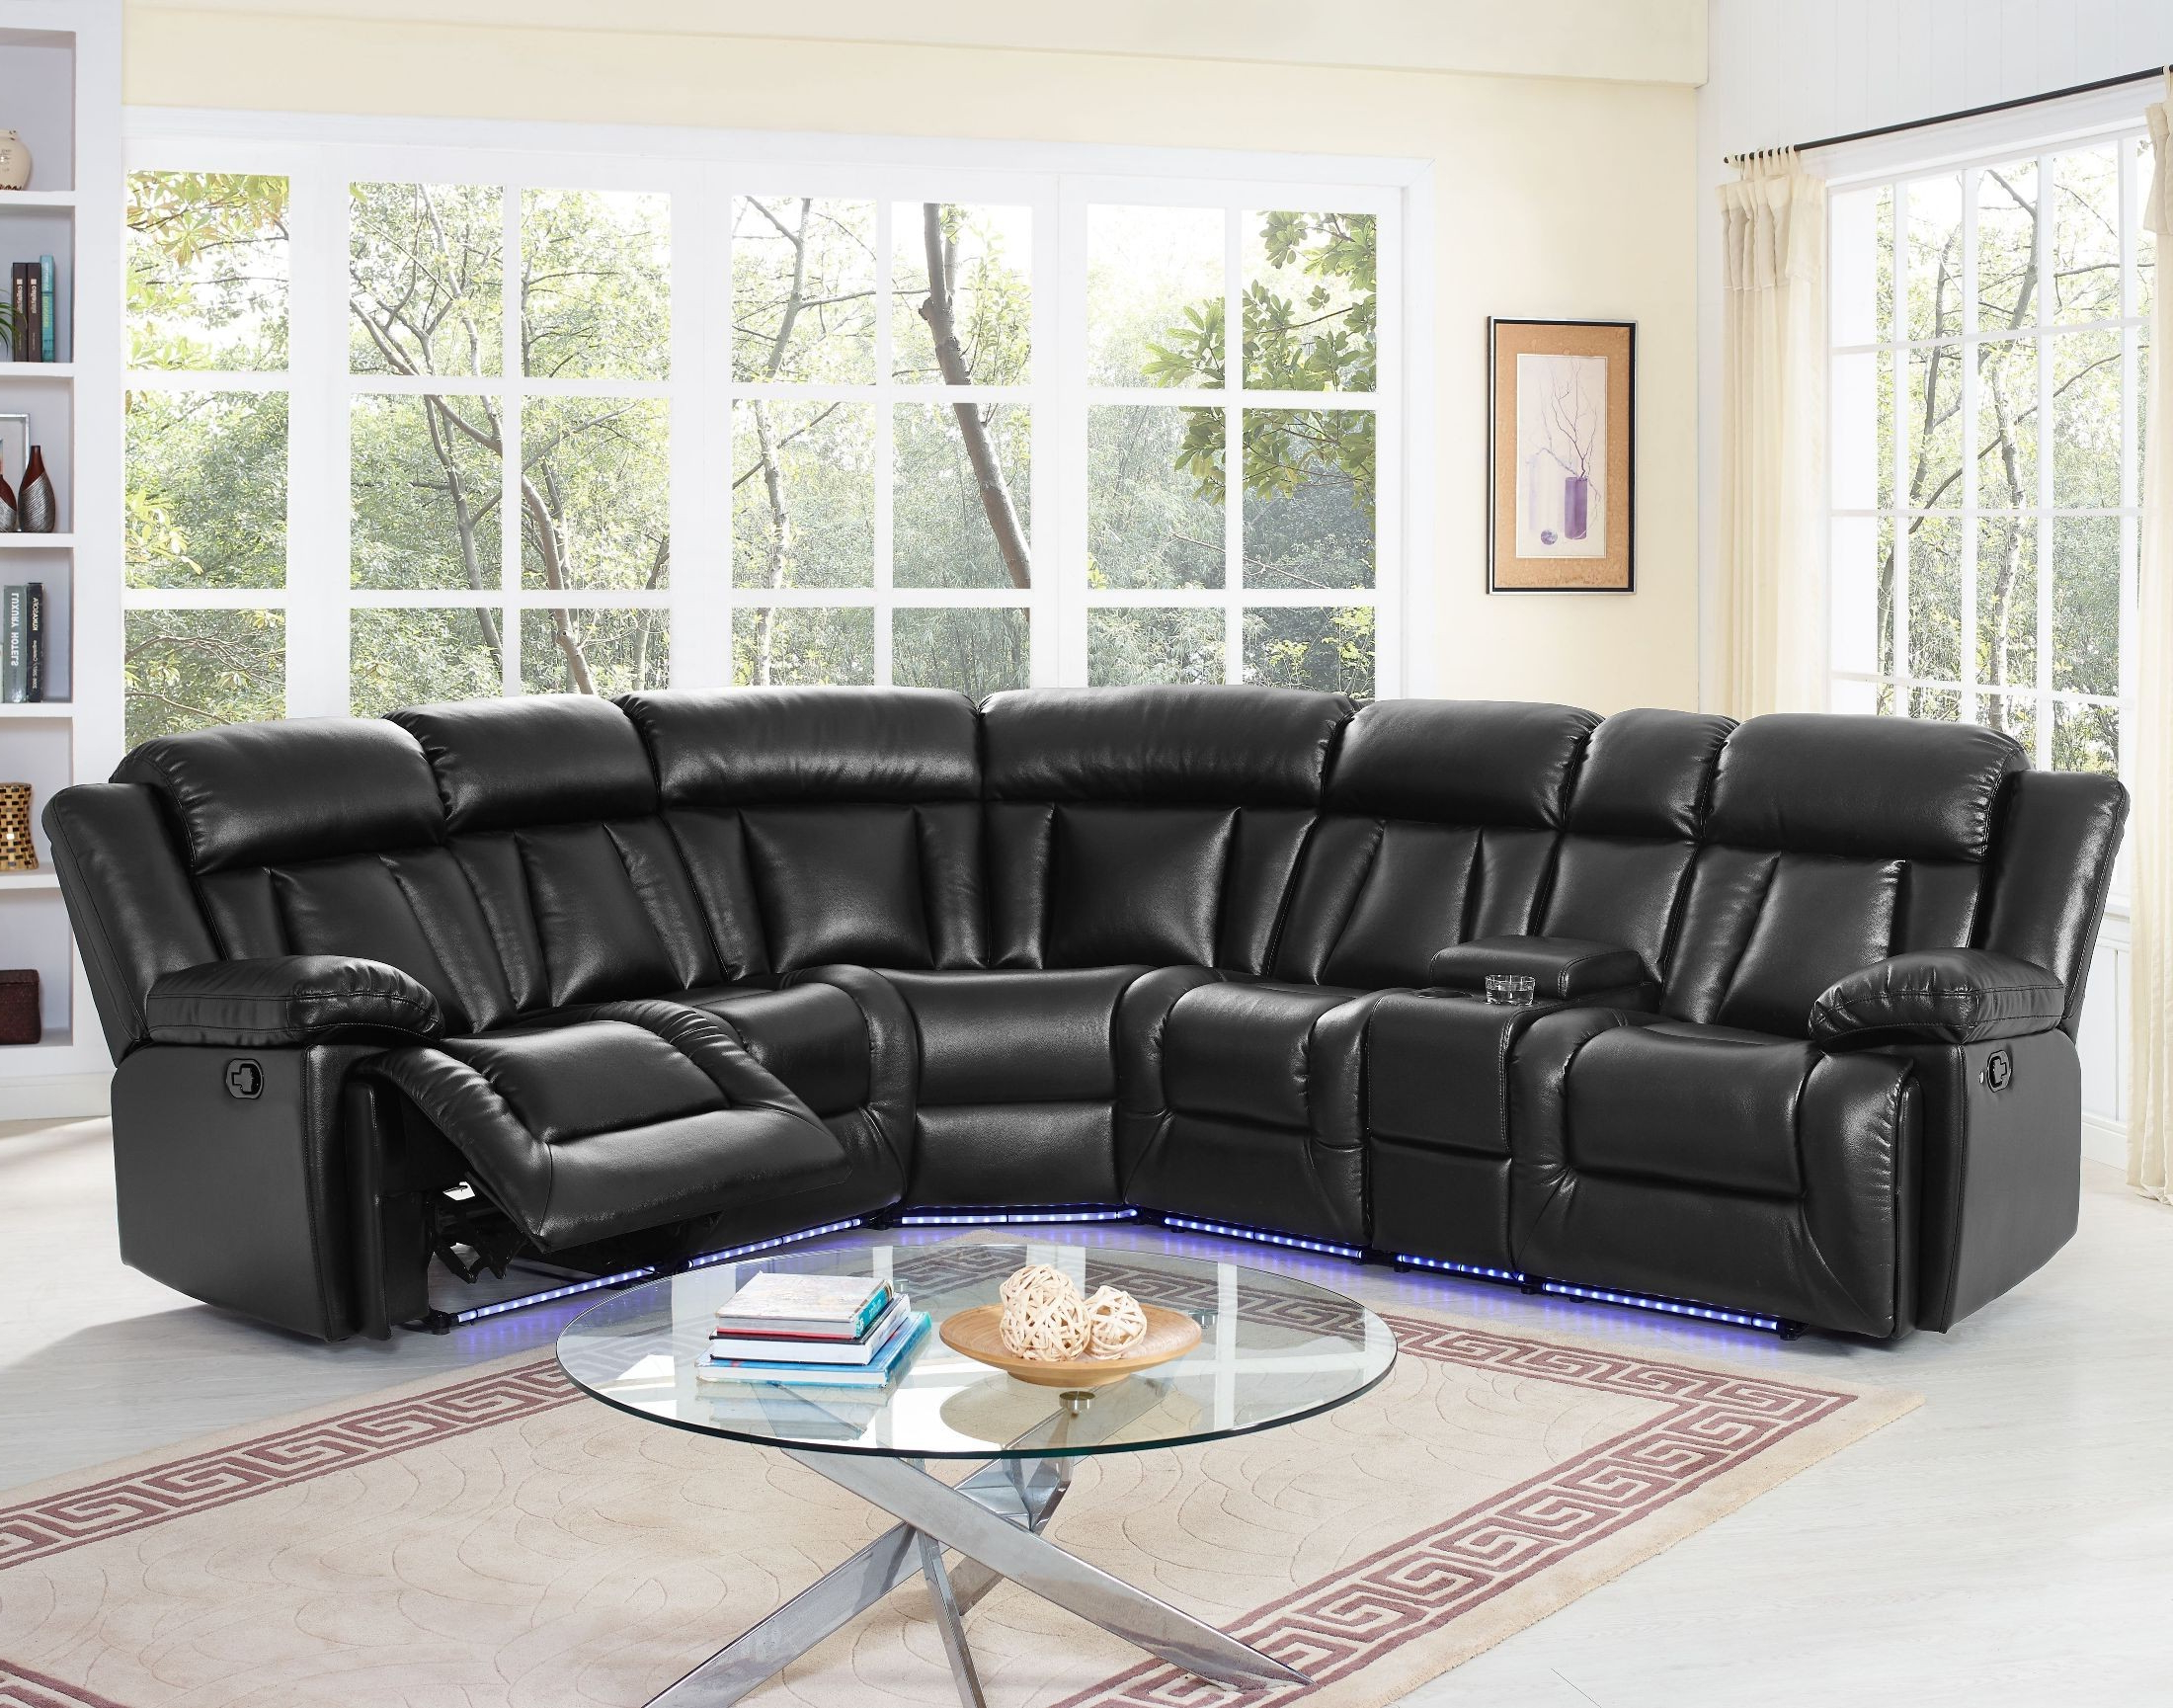 Turdur 2 Piece Sectionals With Laf Loveseat For Fashionable Starlight Premier Black Sectional From New Classic (View 3 of 20)